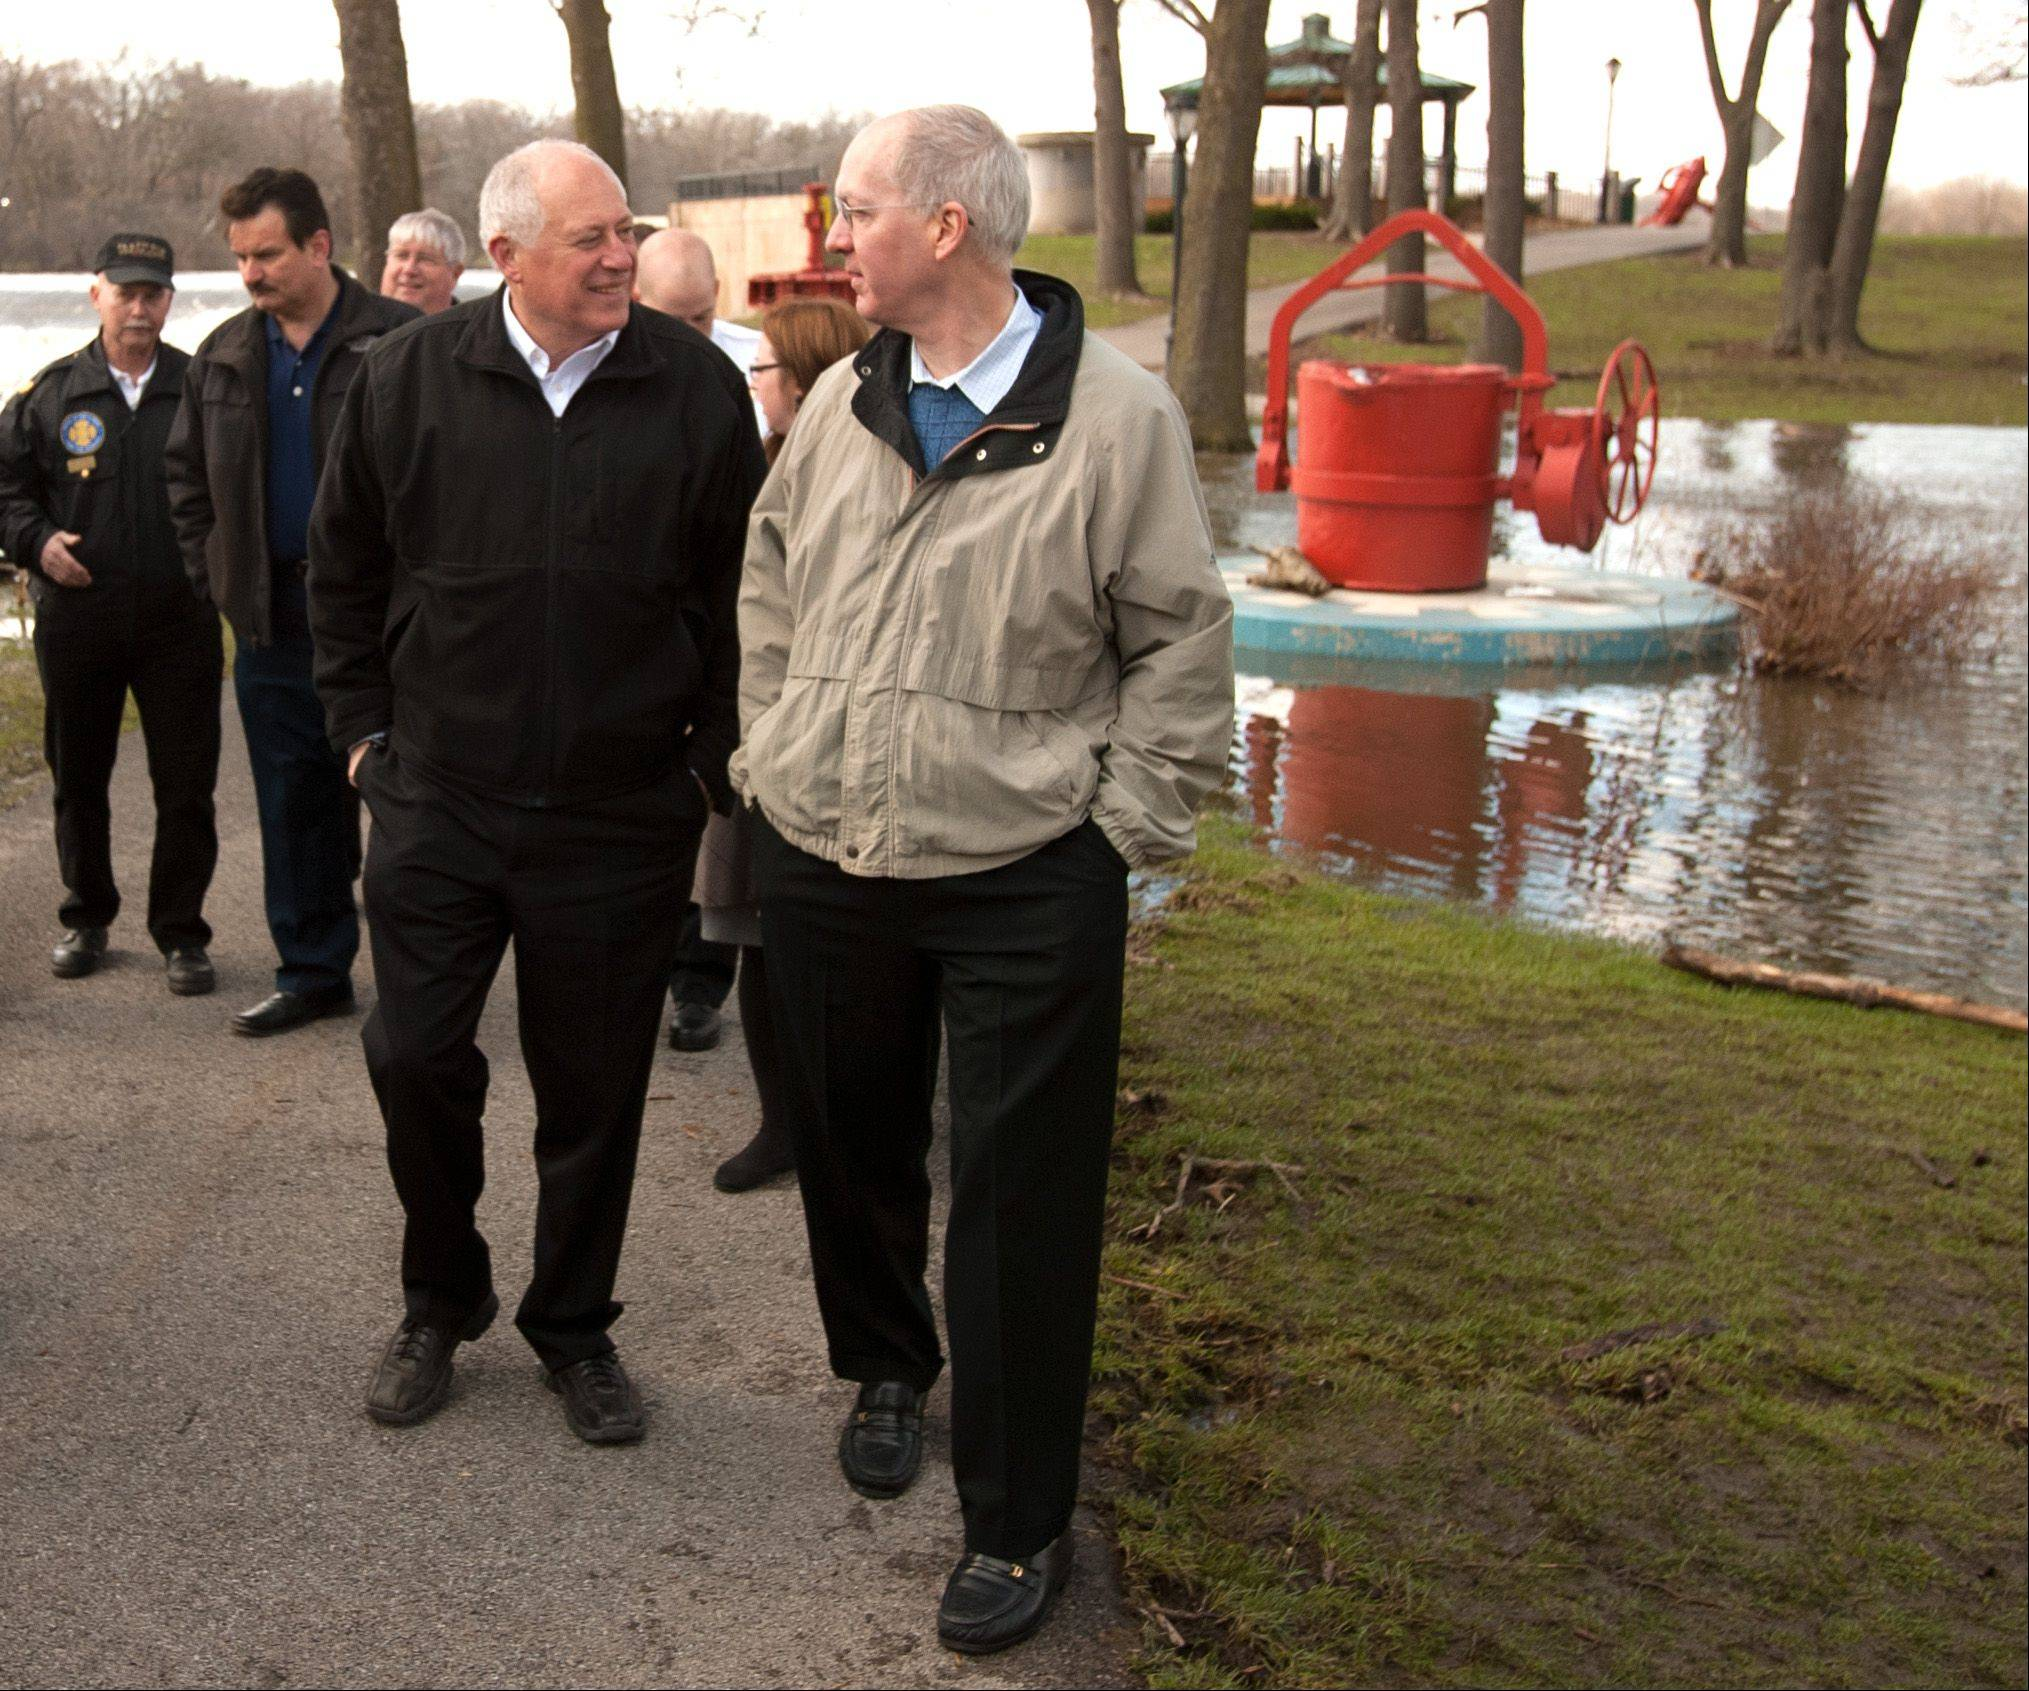 Gov. Pat Quinn addresses flooding concerns throughout the state following a news conference Saturday along the Fox River in North Aurora. He asked for U.S. Rep. Bill Foster's help in Washington.